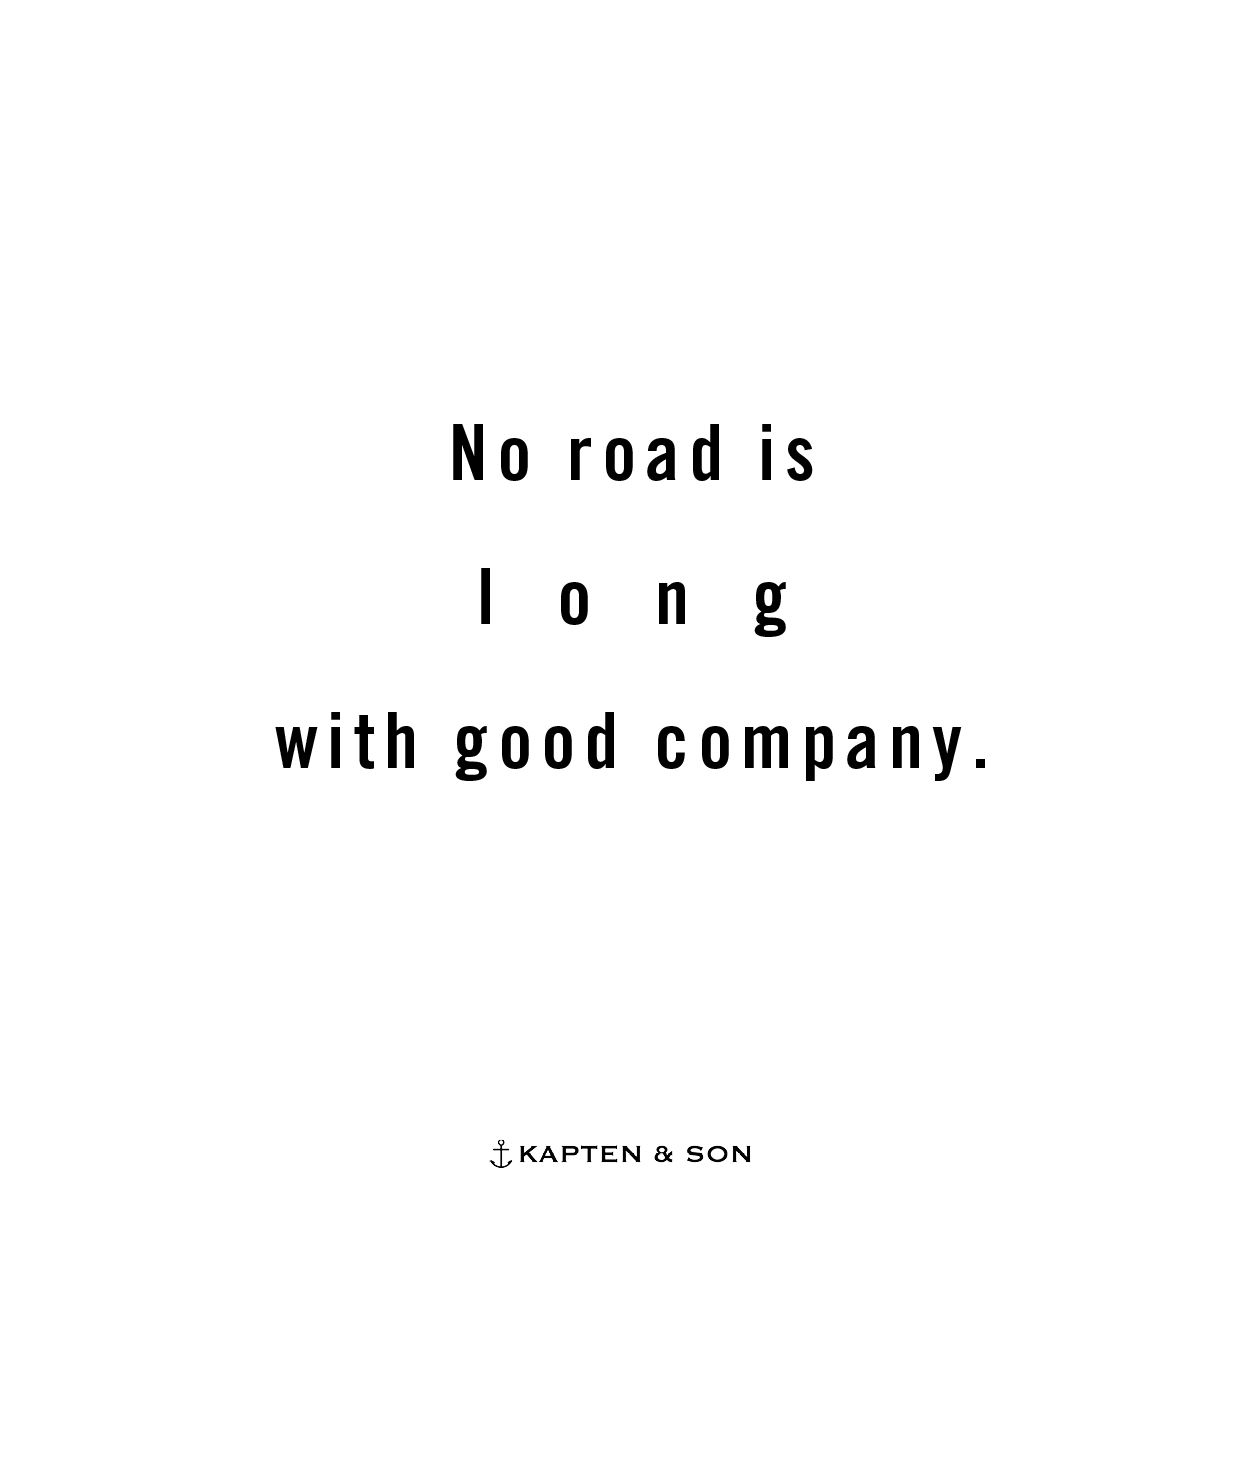 Good Friends Good Company Quotes: No Road Is L O N G With Good Company.